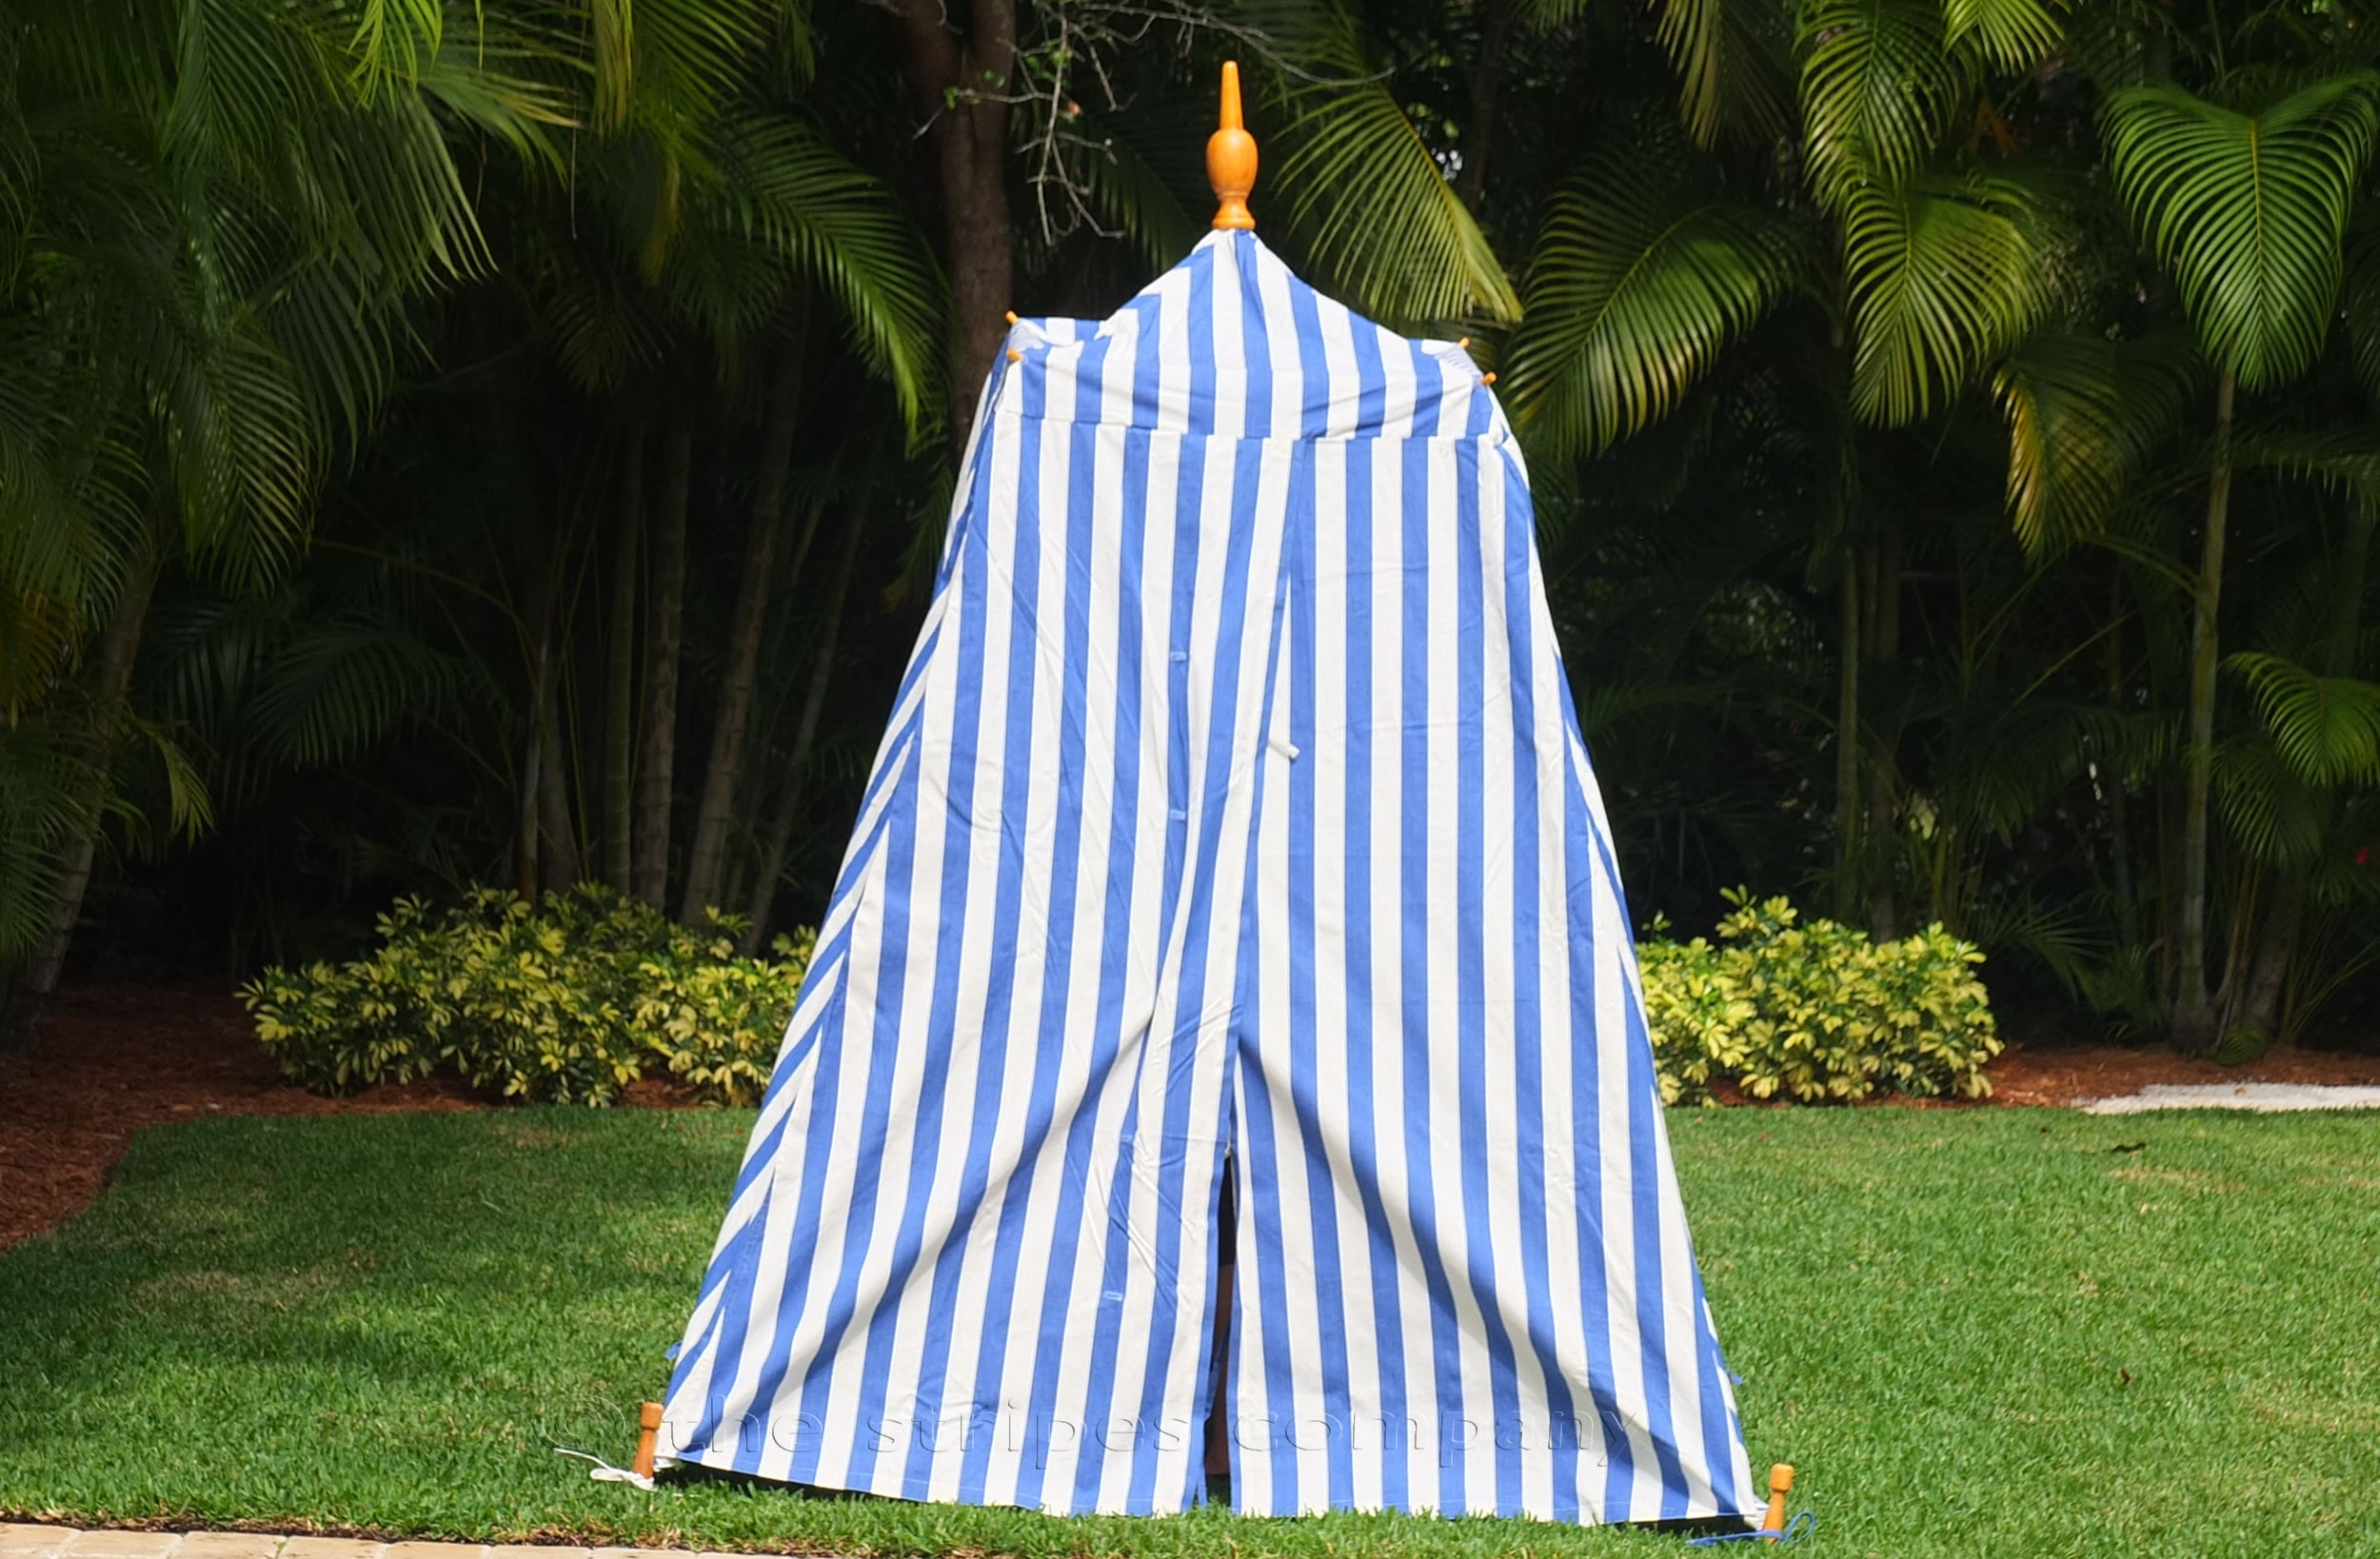 Blue Striped Beach Tents | Empire Bathing Tents in Classic Blue and White Stripes | Soccer Stripe